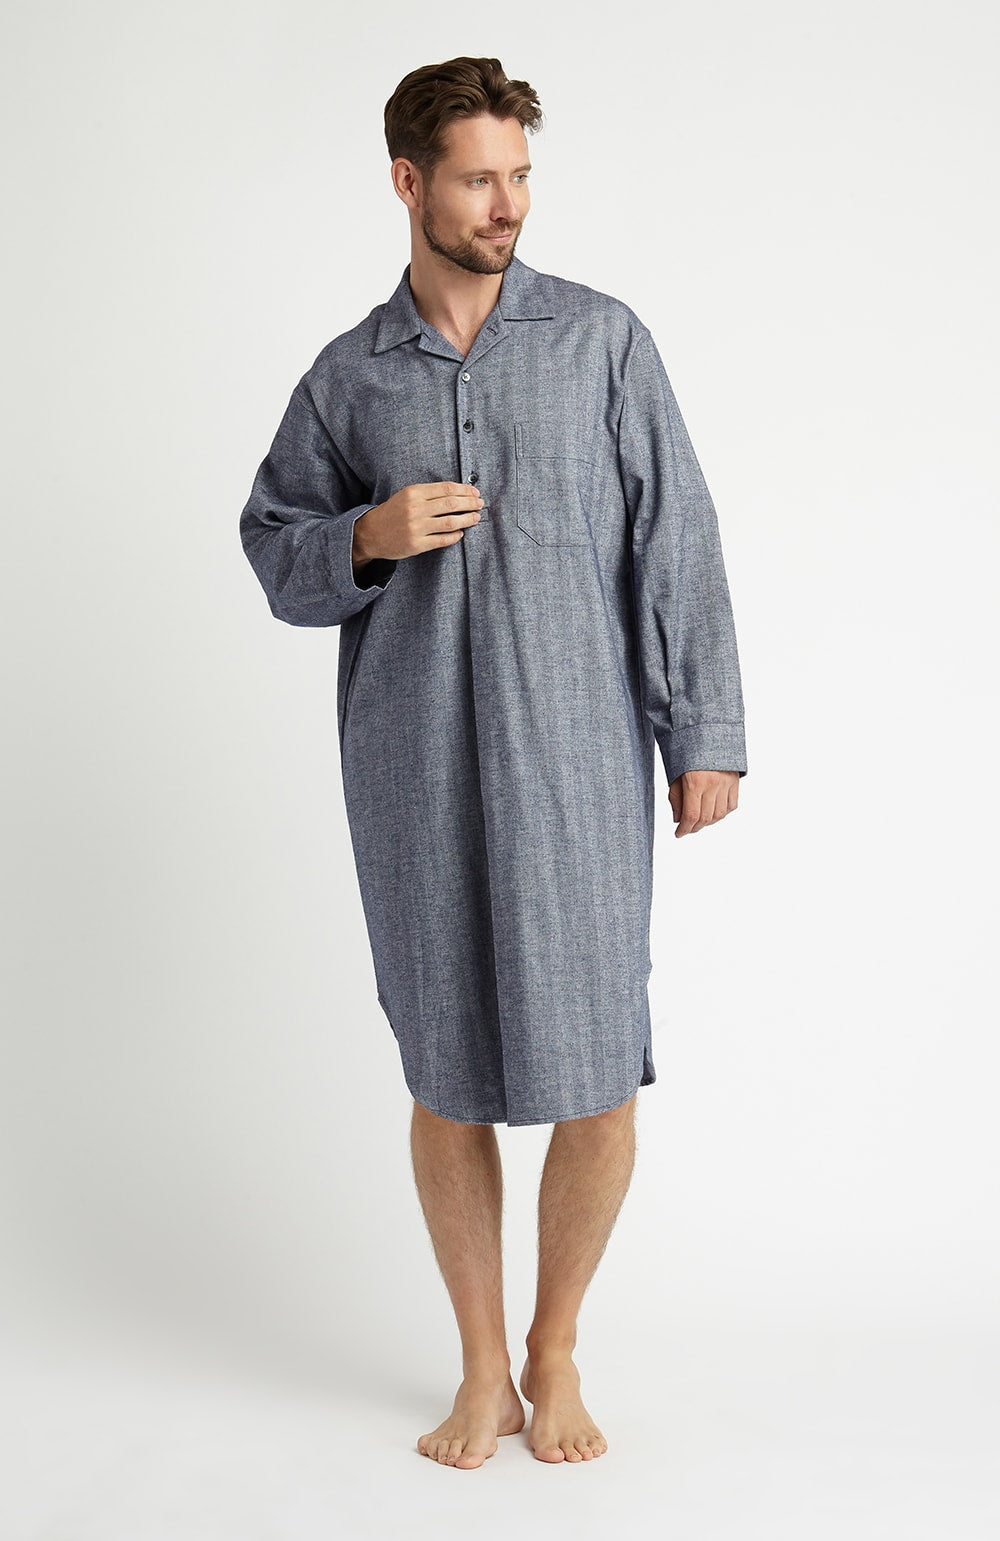 Brushed Cotton Nightshirt (jmnm)- Navy | Bonsoir of London